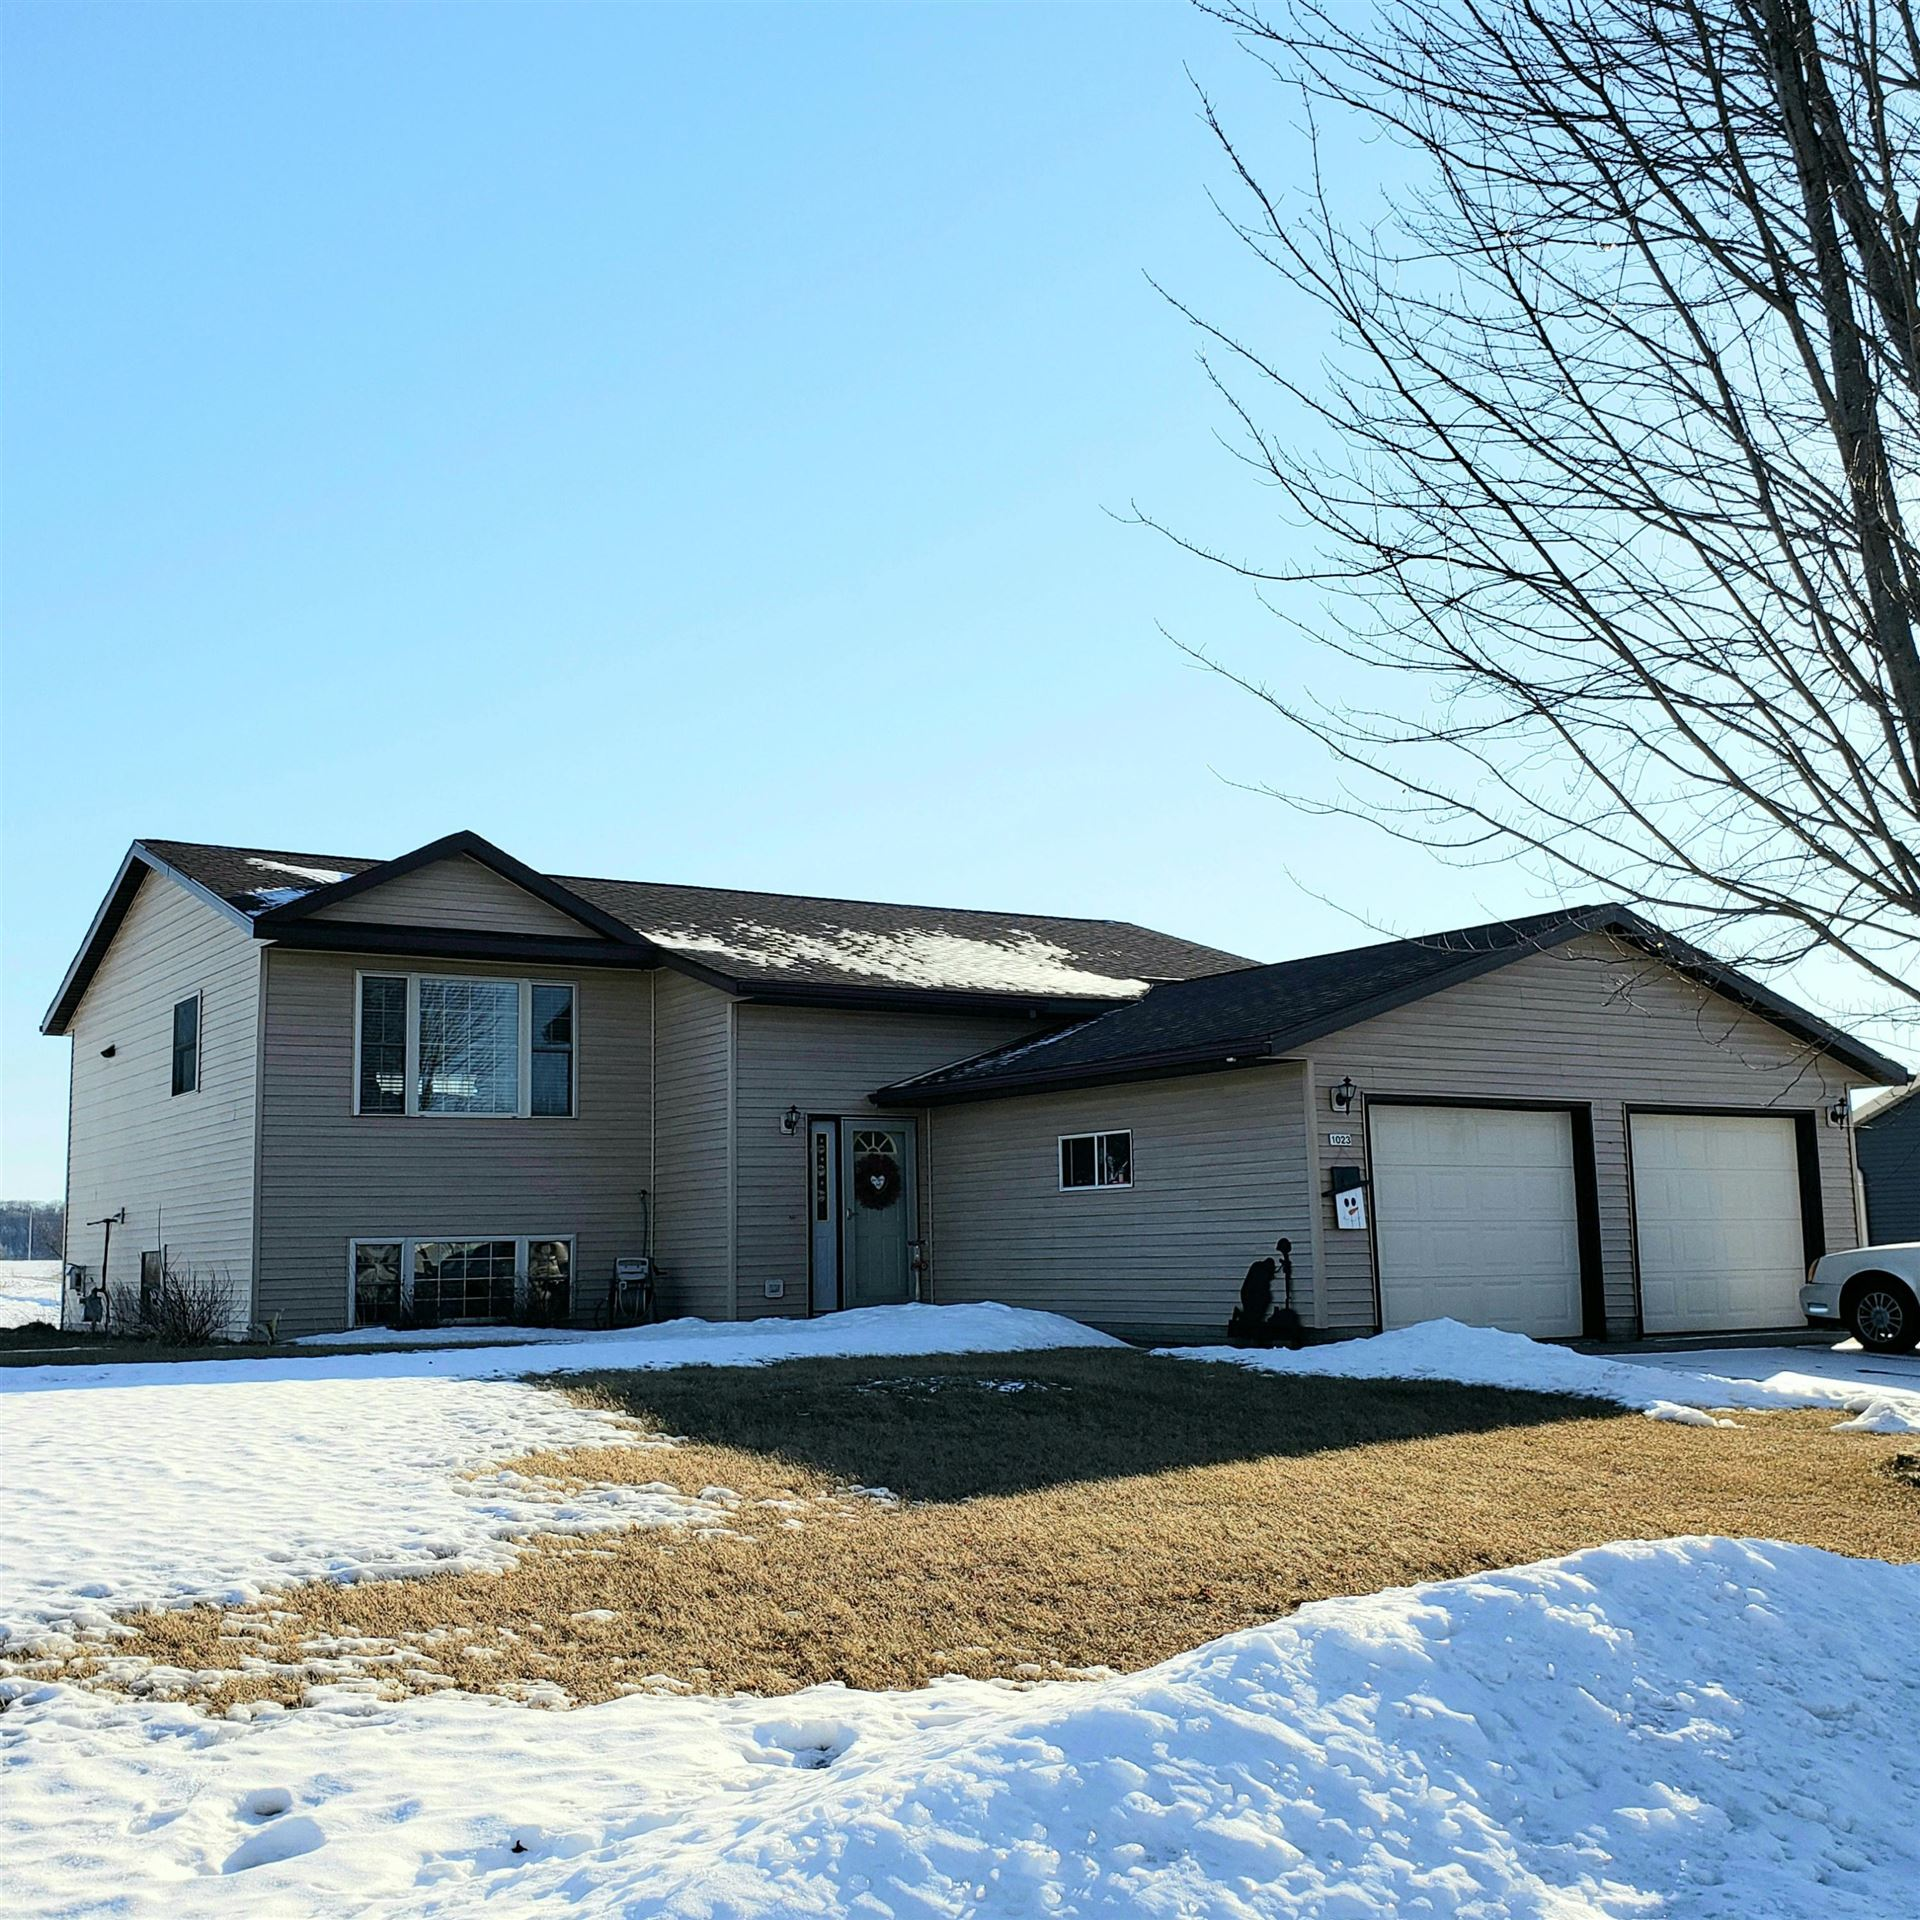 1023 E Taft St, Blair, WI 54616 - MLS#: 1728855